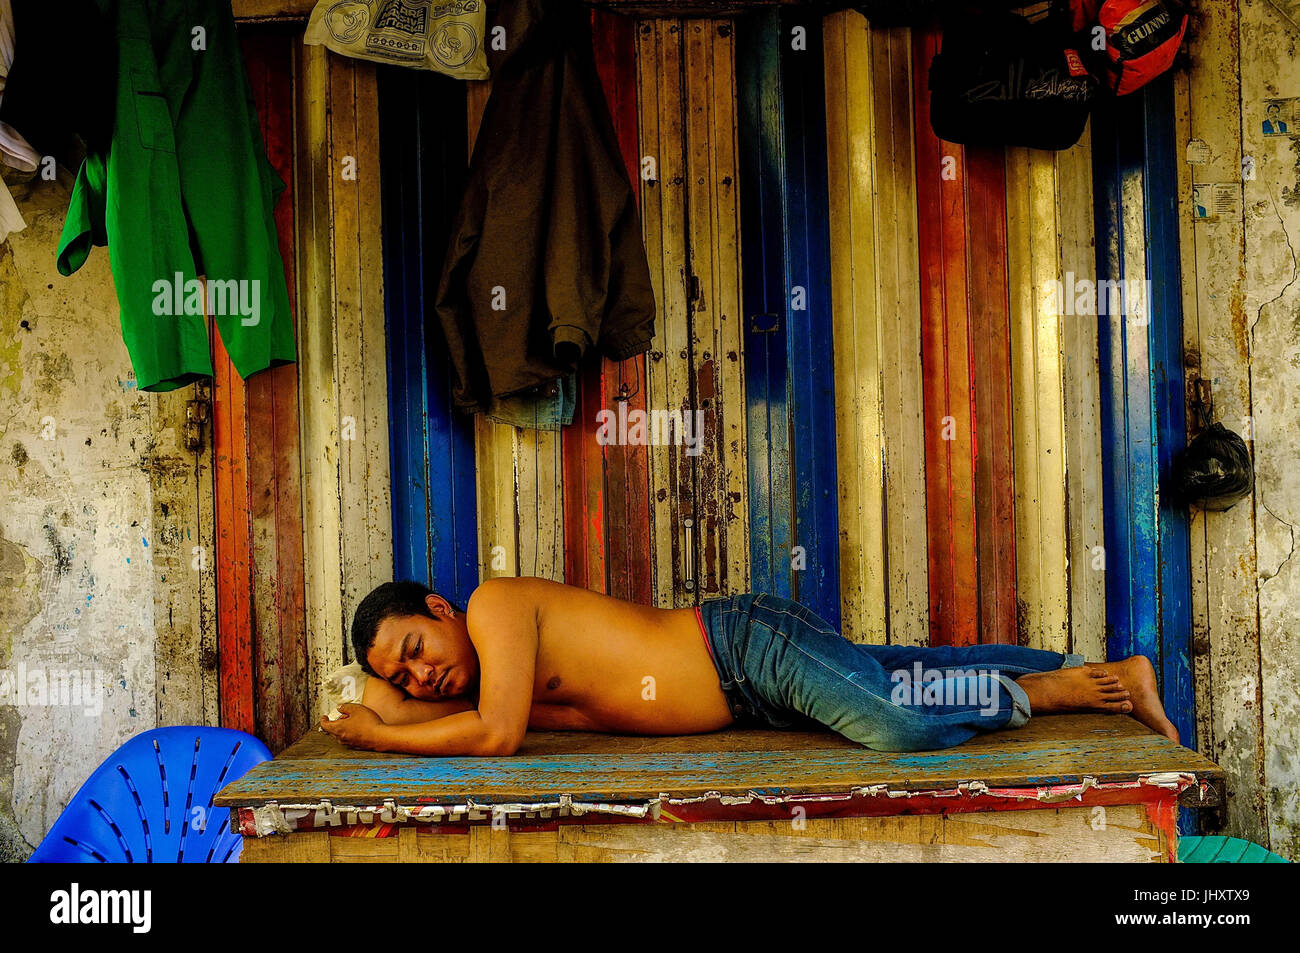 An Indonesian man sleeps in the street in Makassar, South Sulawesi, Indonesia - Stock Image